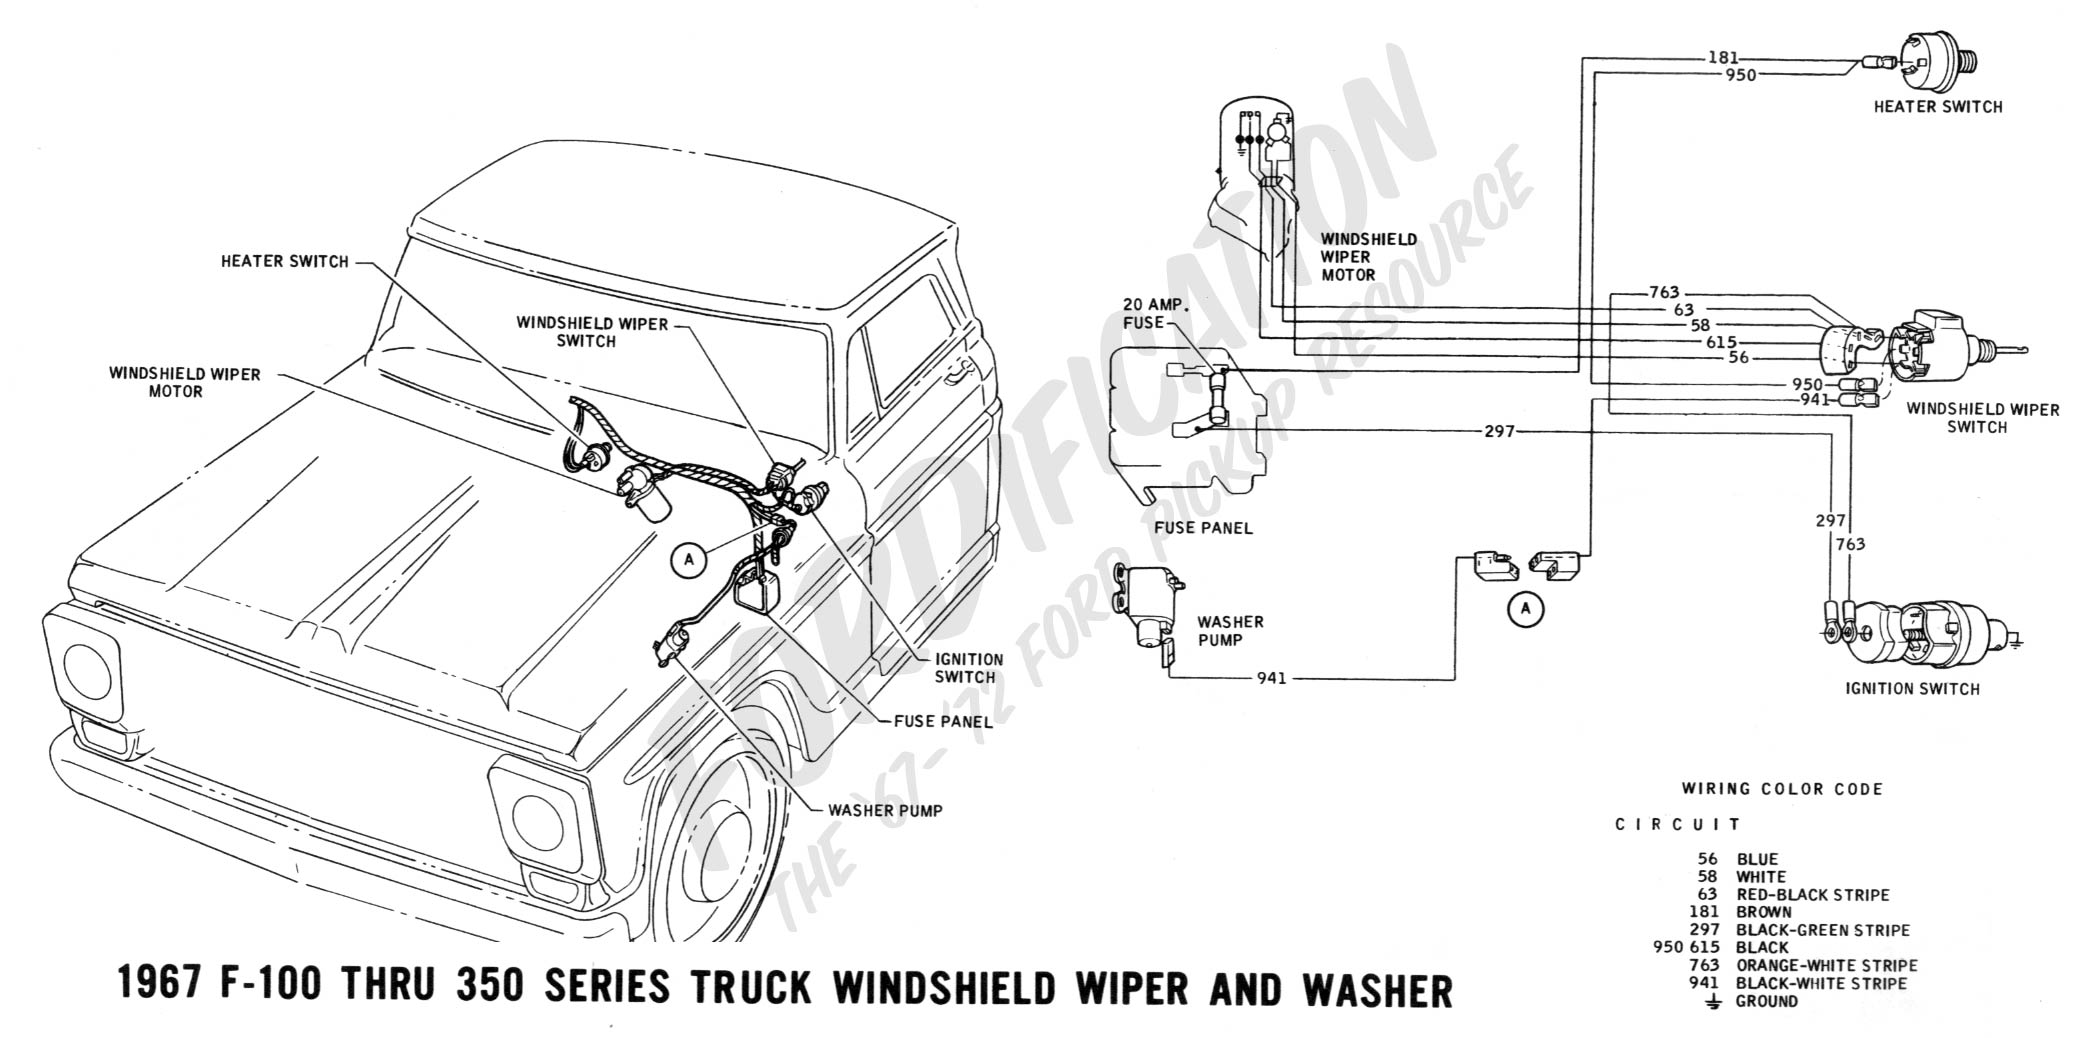 wiring 1967wipers wiper wiring diagram wiper wiring diagram 67 firebird \u2022 wiring 2003 PT Cruiser Wiring-Diagram at reclaimingppi.co